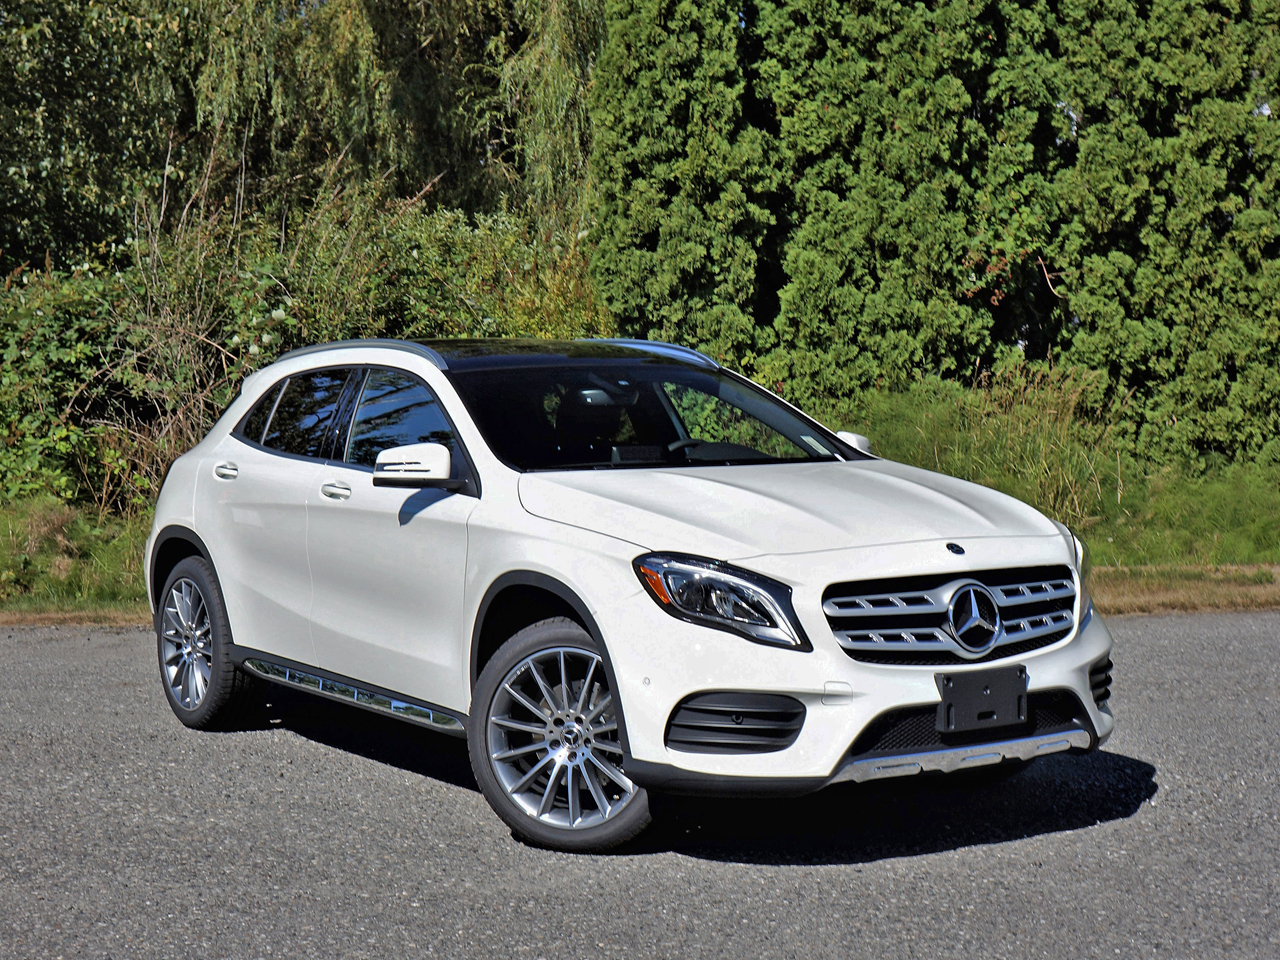 2018 mercedes benz gla 250 4matic road test carcostcanada. Black Bedroom Furniture Sets. Home Design Ideas